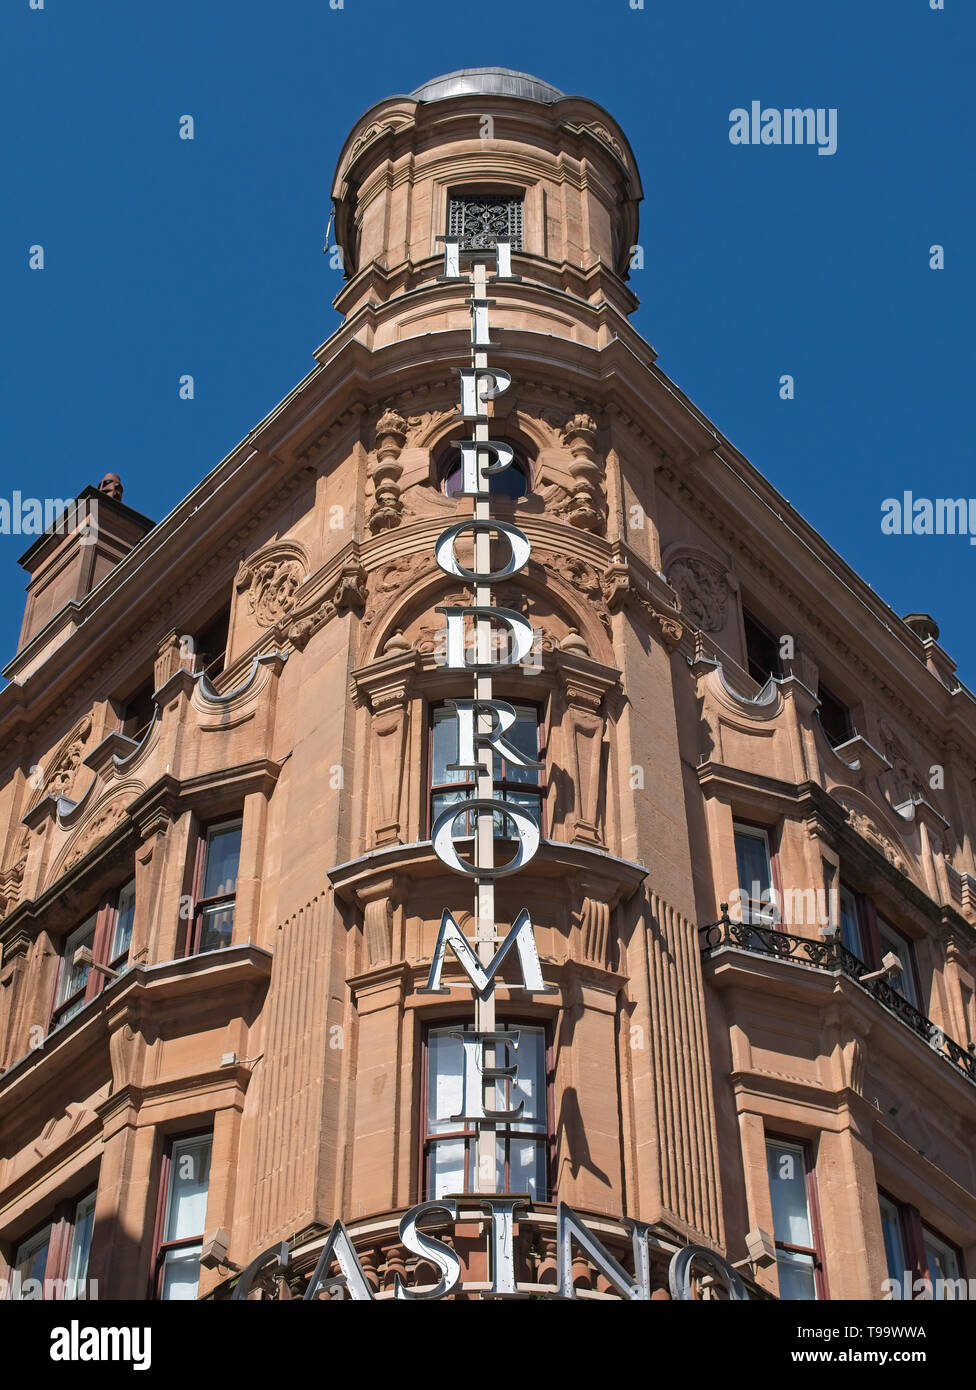 Building exterior of the famous Hippodrome Casino at Leicester Square, London, UK - Stock Image